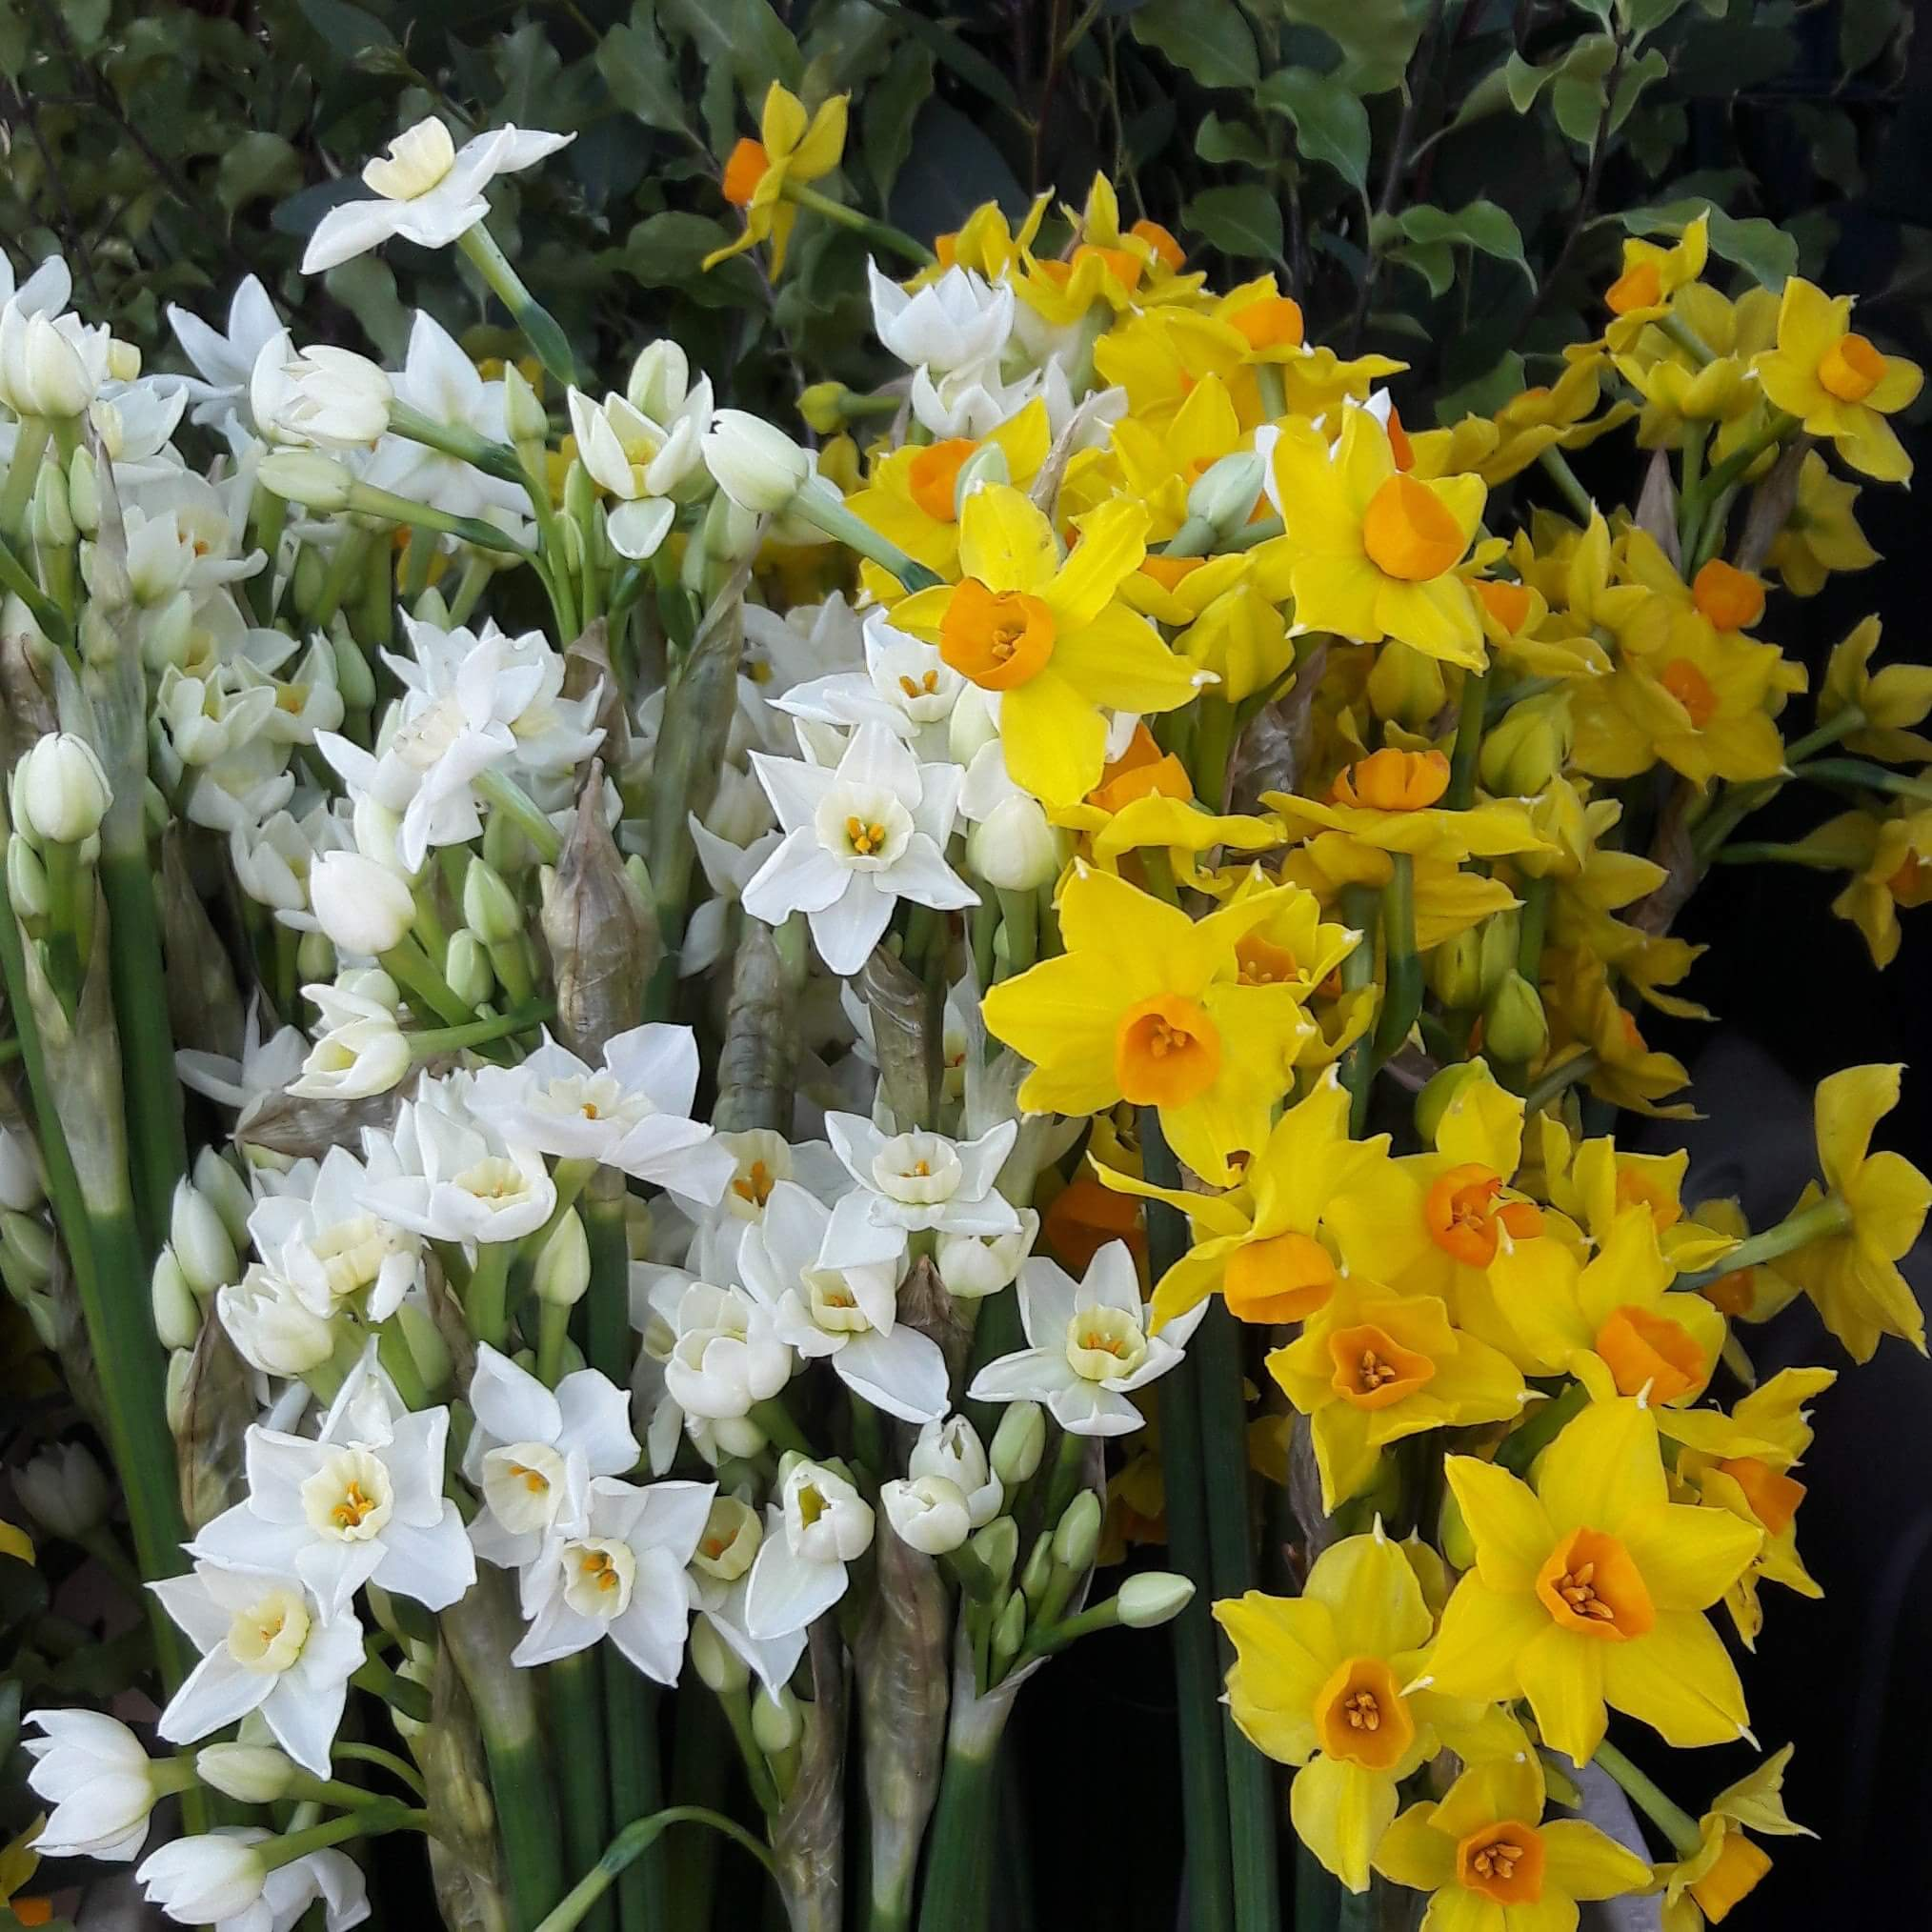 Sweetly scented early narcissus